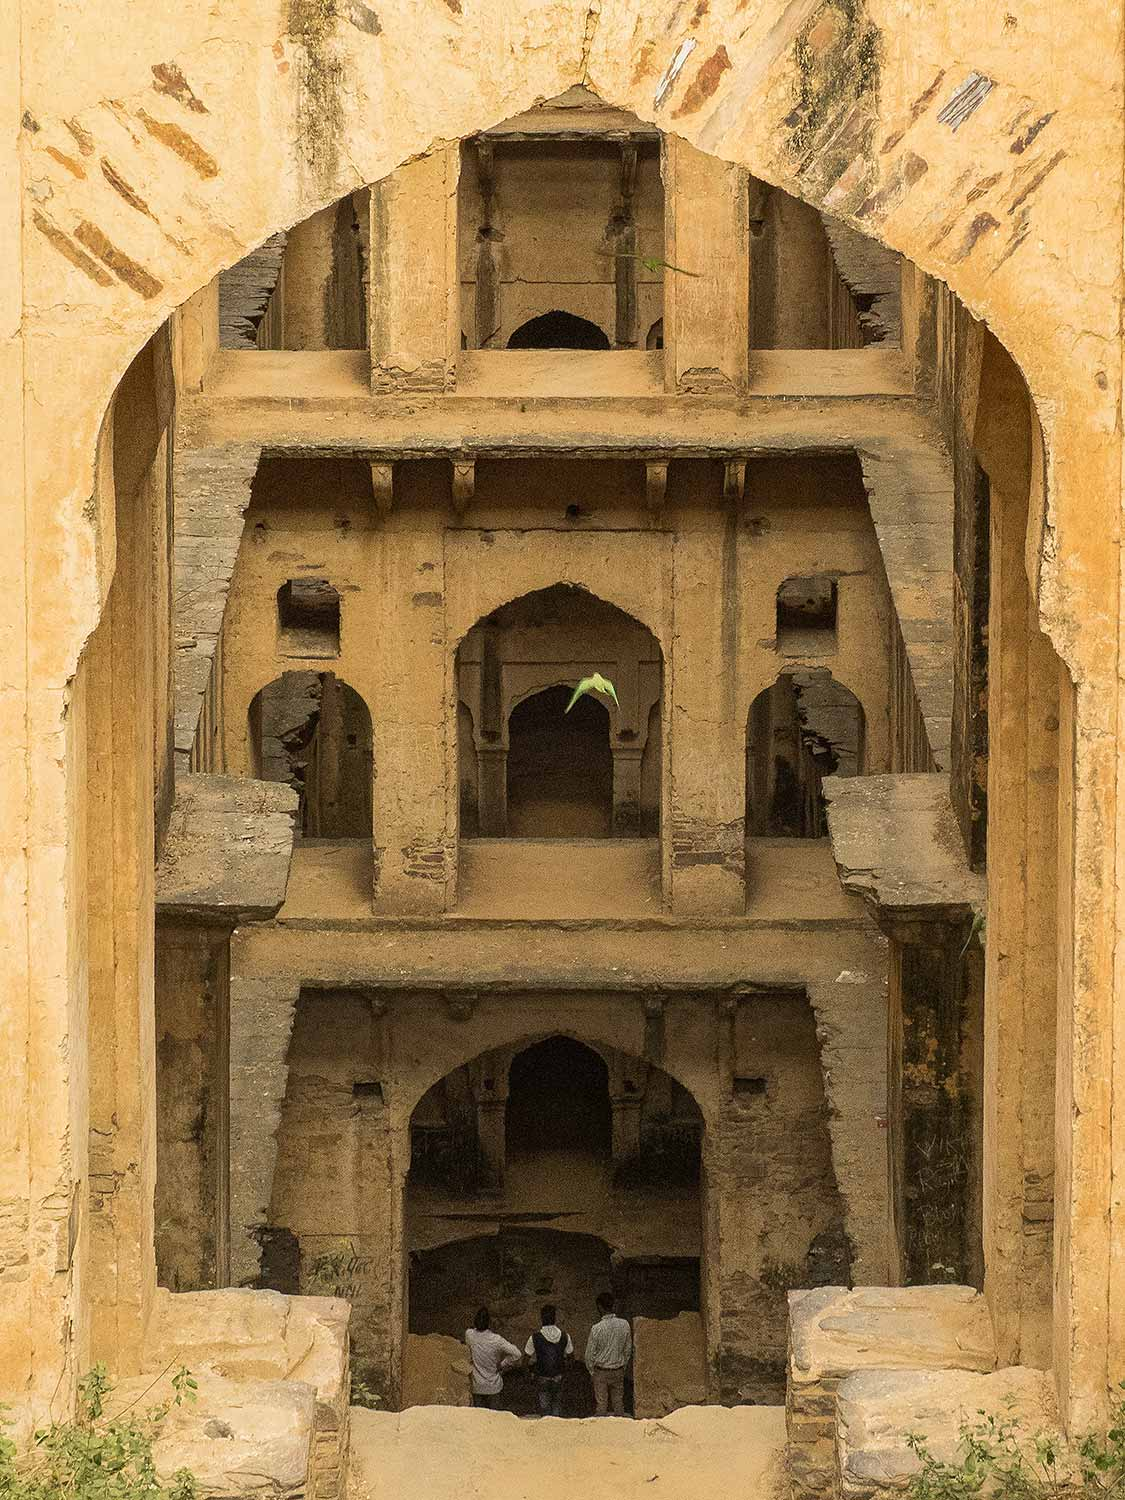 Neemrana Stepwell with Parrots, Rajasthan